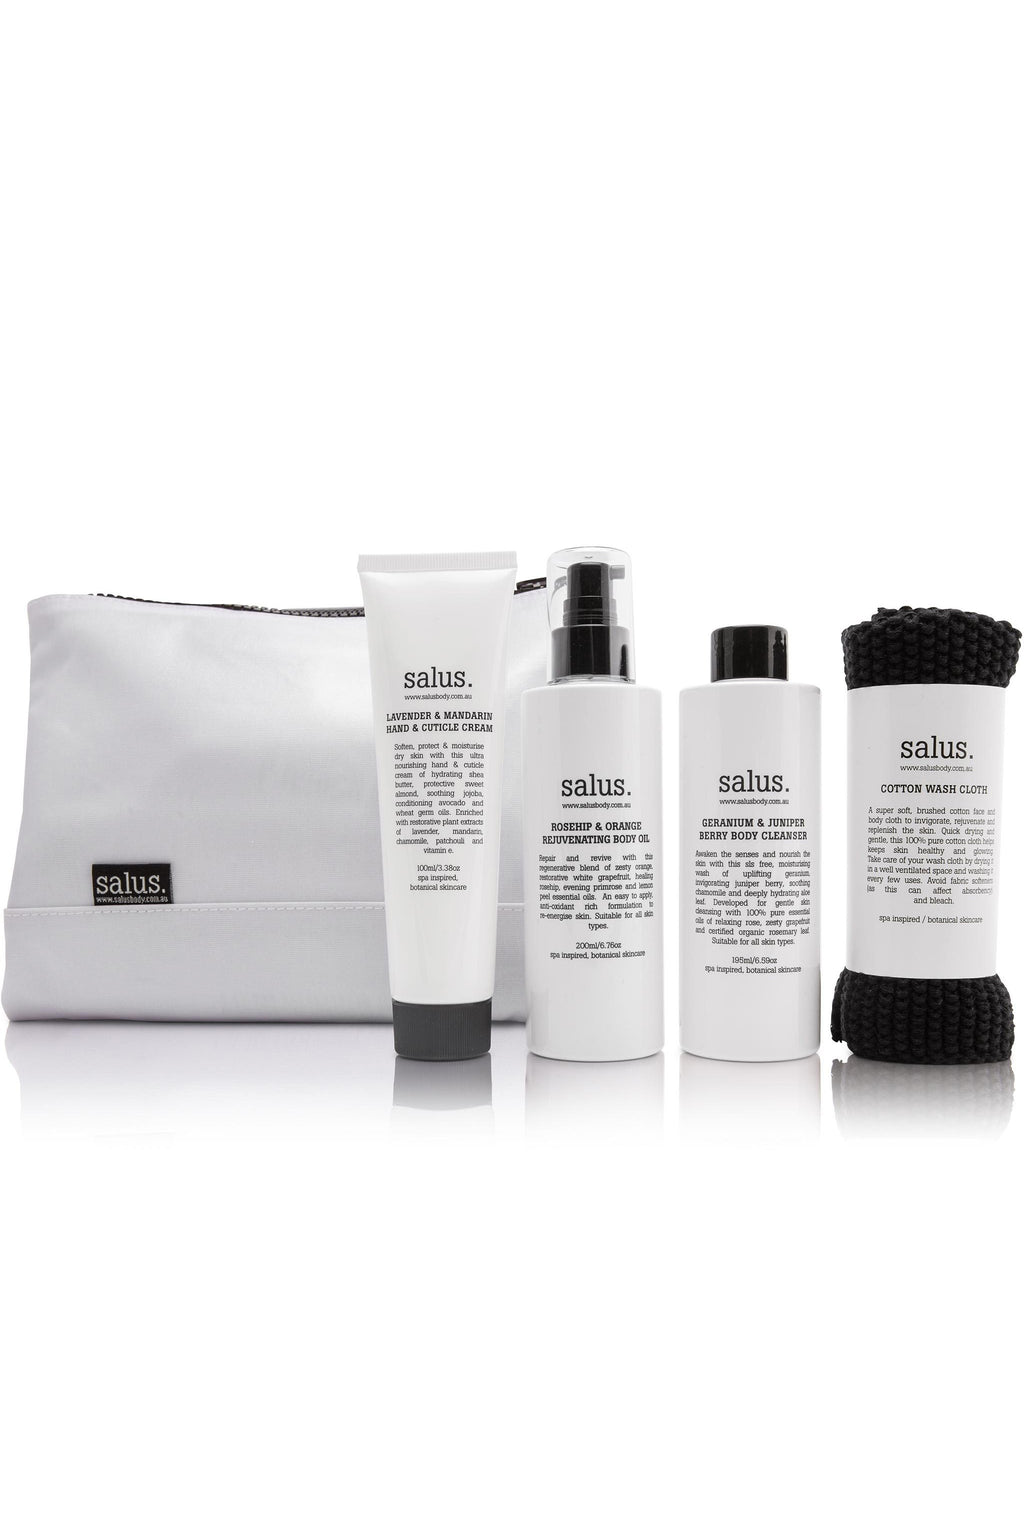 SALUS - Travel Set online at PAYA boutique